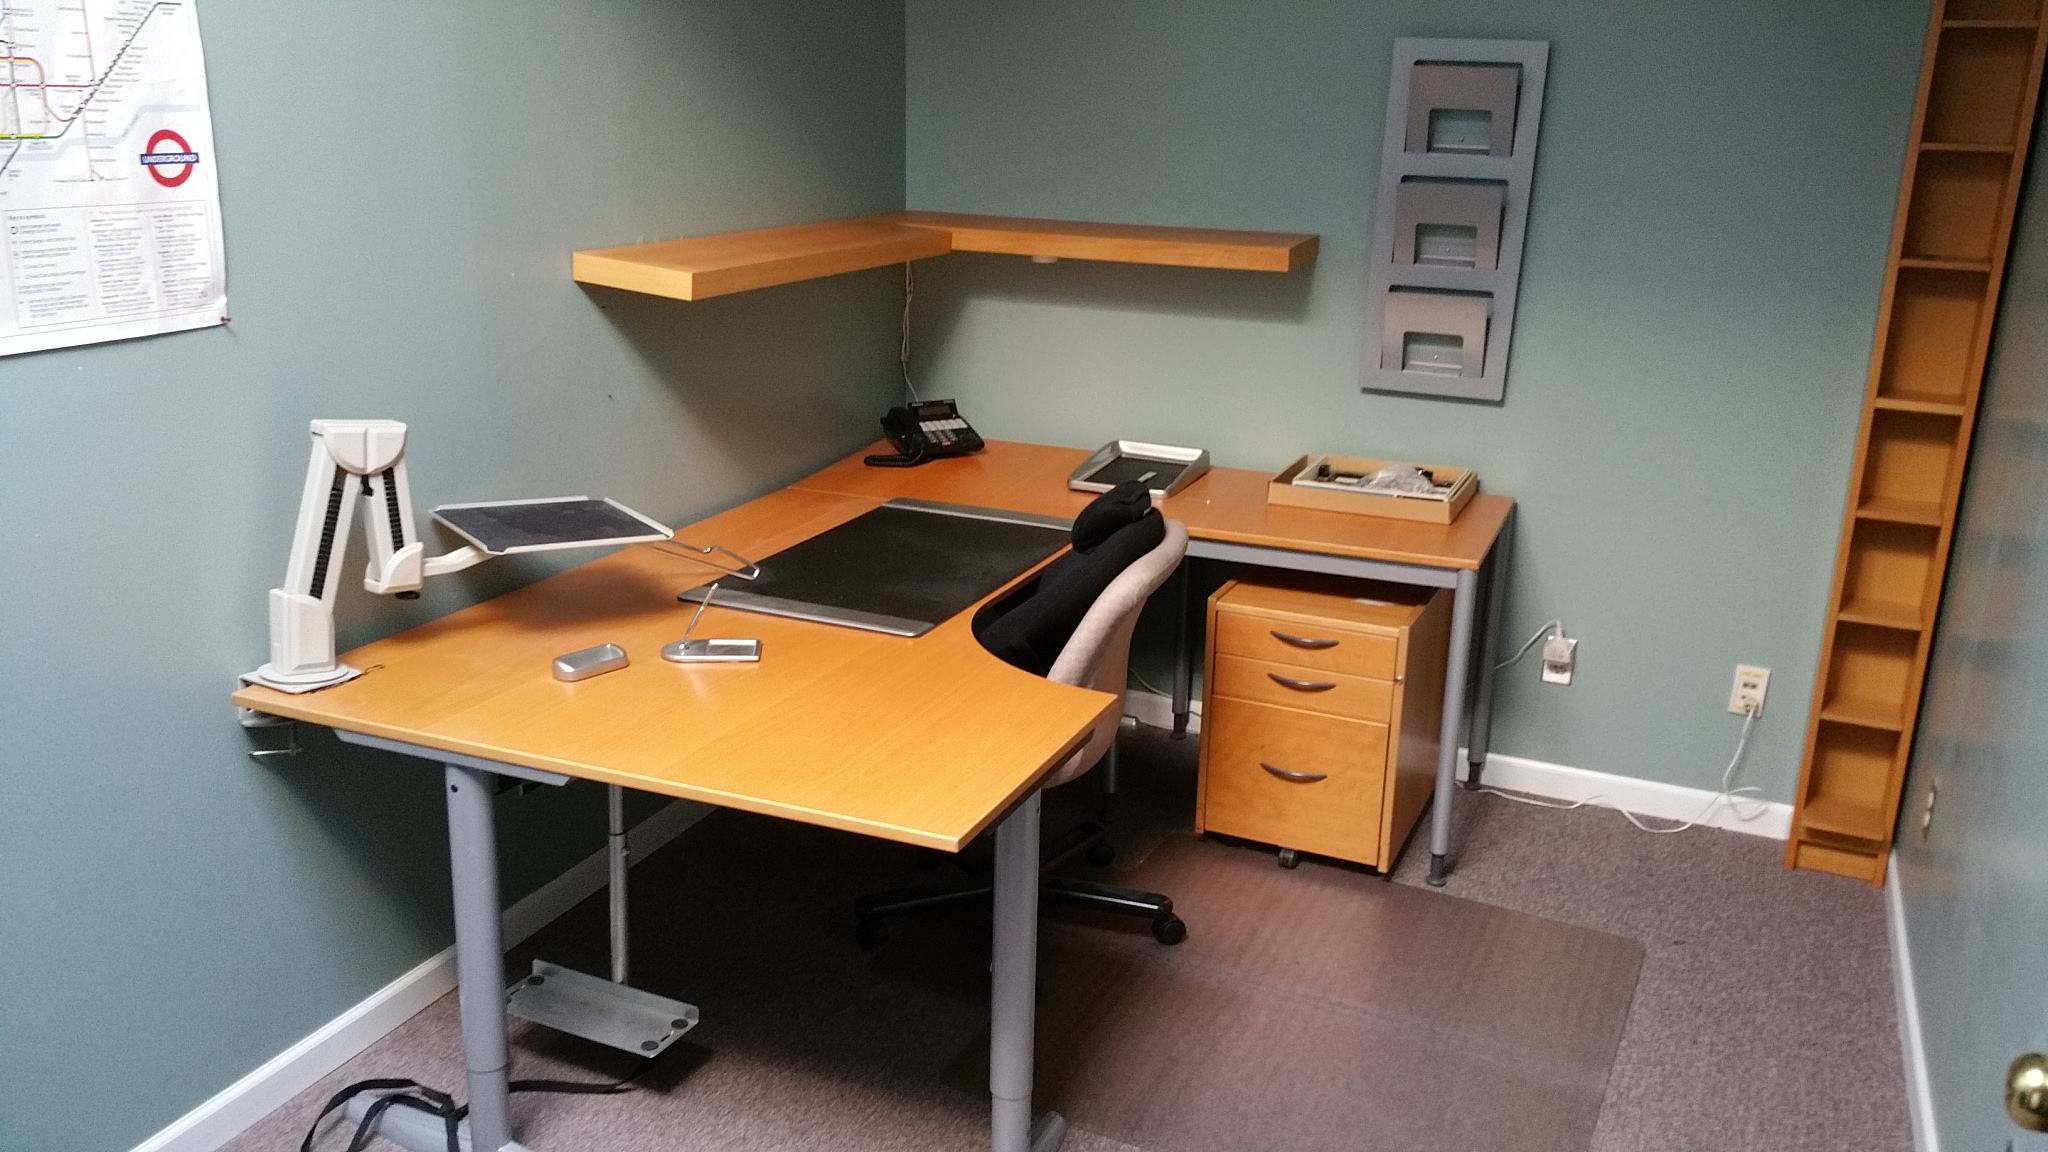 Lease Office Furniture 76 Office Furniture On Lease Browse